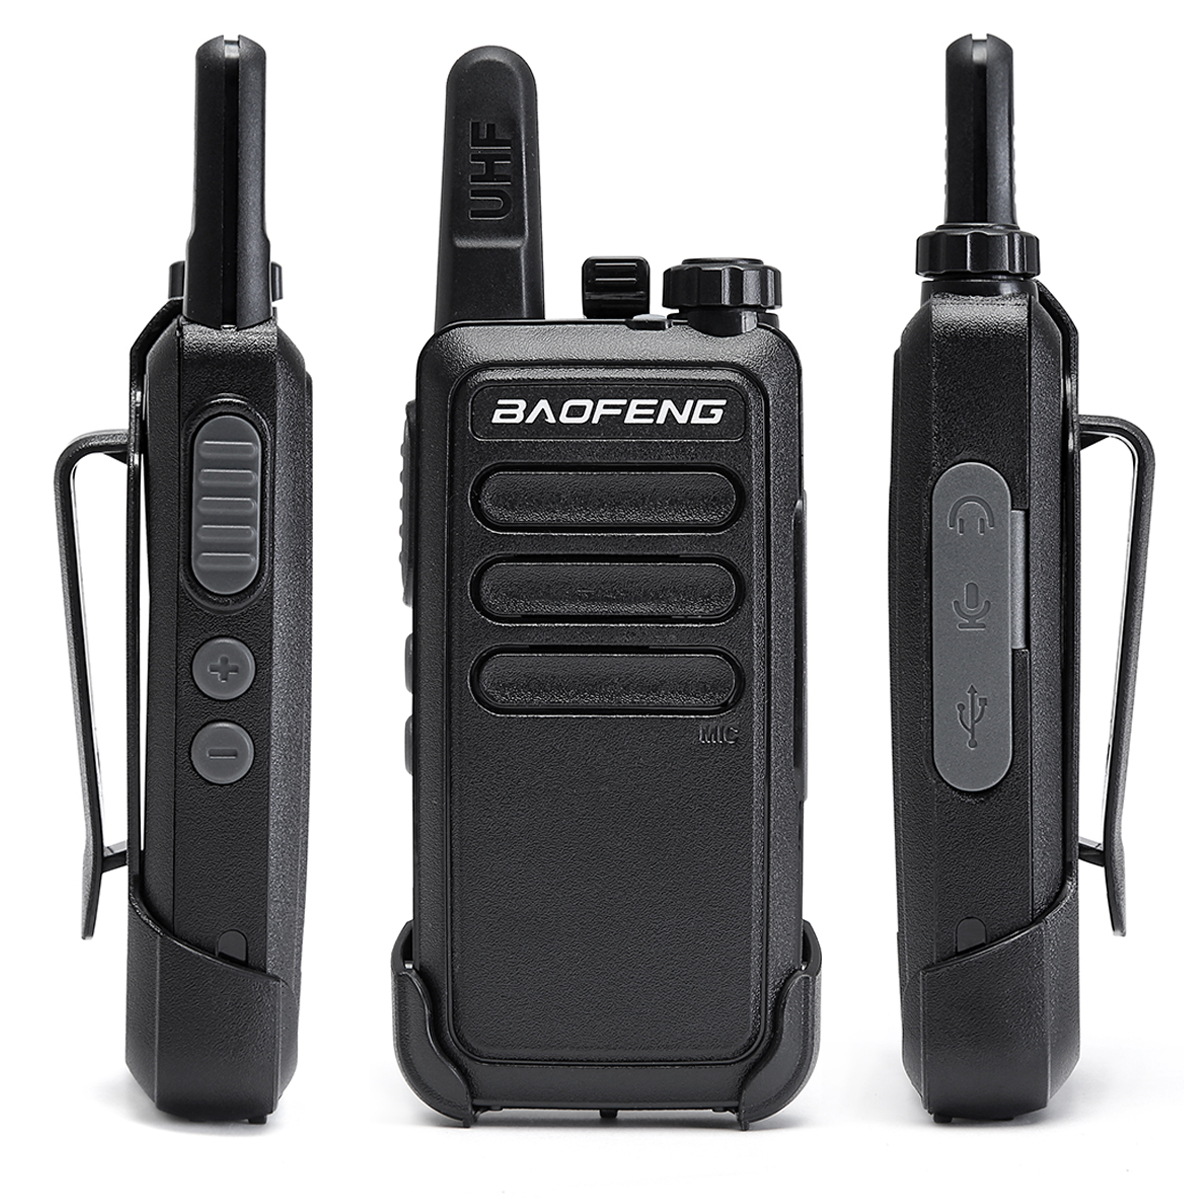 Image 2 - 2 Pcs Baofeng BF C9 Portable Radio Mini Walkie Talkie 400 470MHz UHF VOX USB Charging Handheld Two Way Ham Radio CommunicatorWalkie Talkie   -